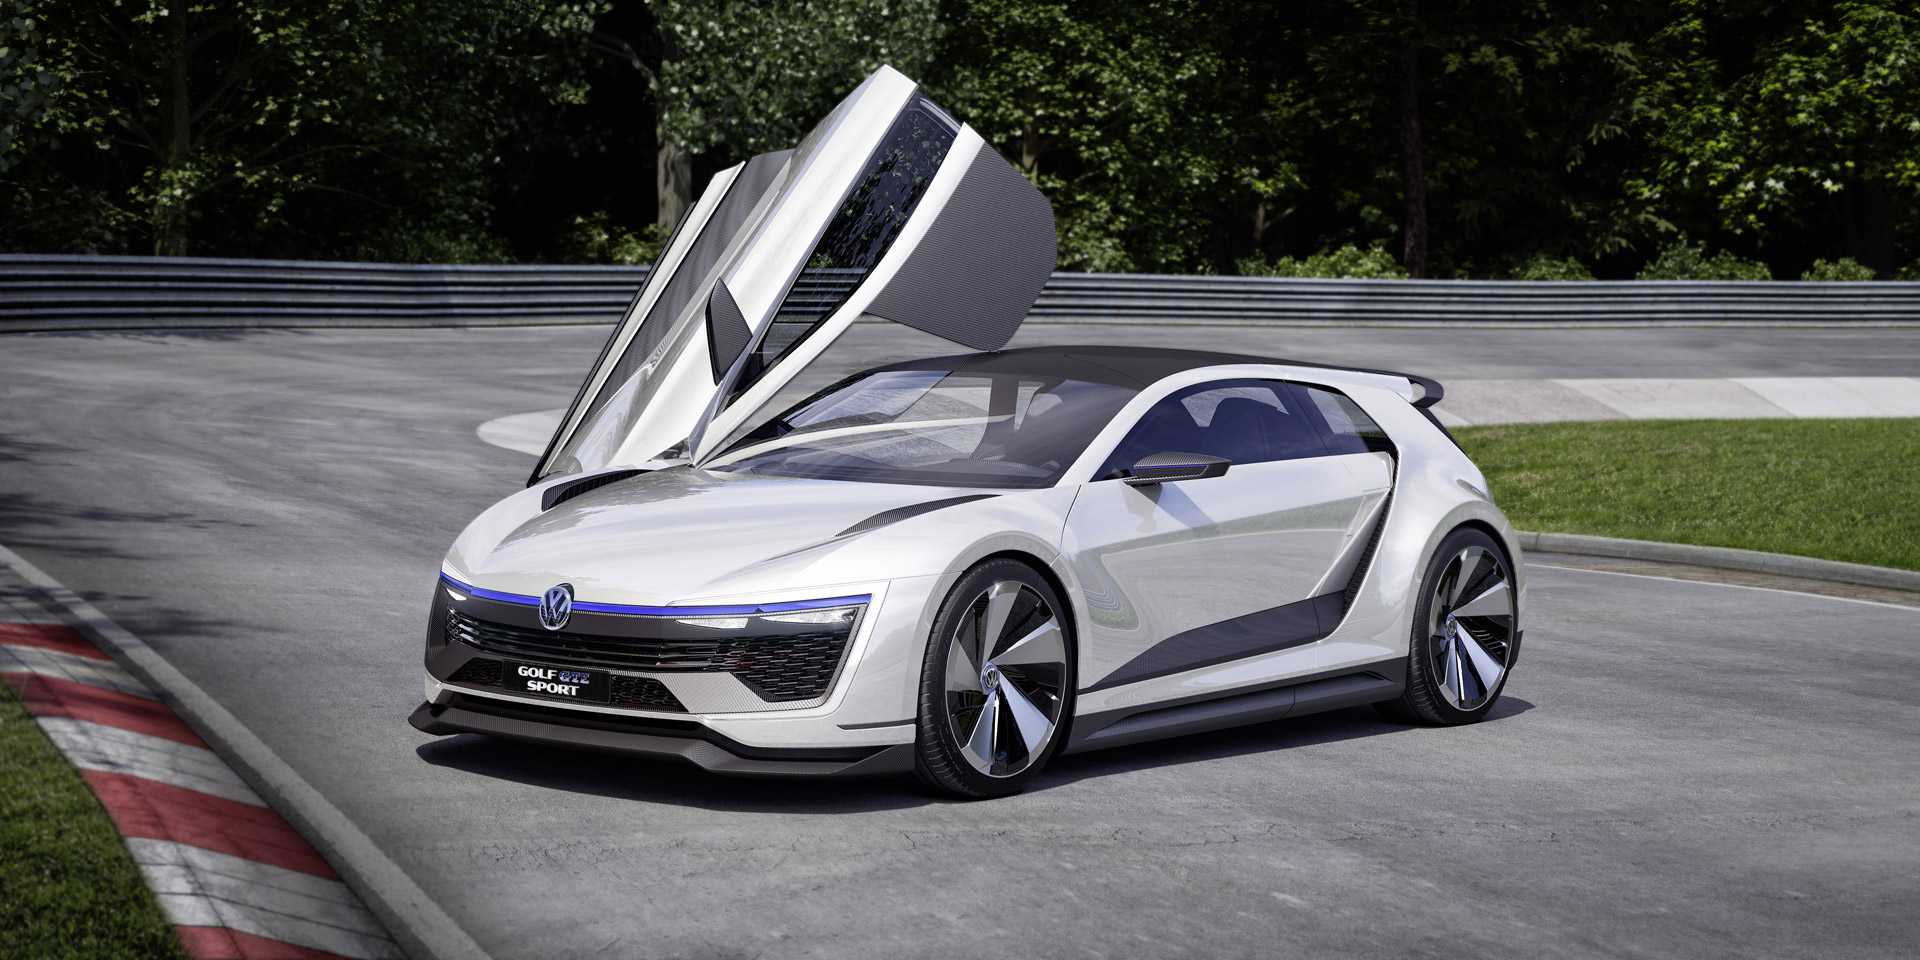 May Deals Vw Plug In Sports Car Tesla Update The Week